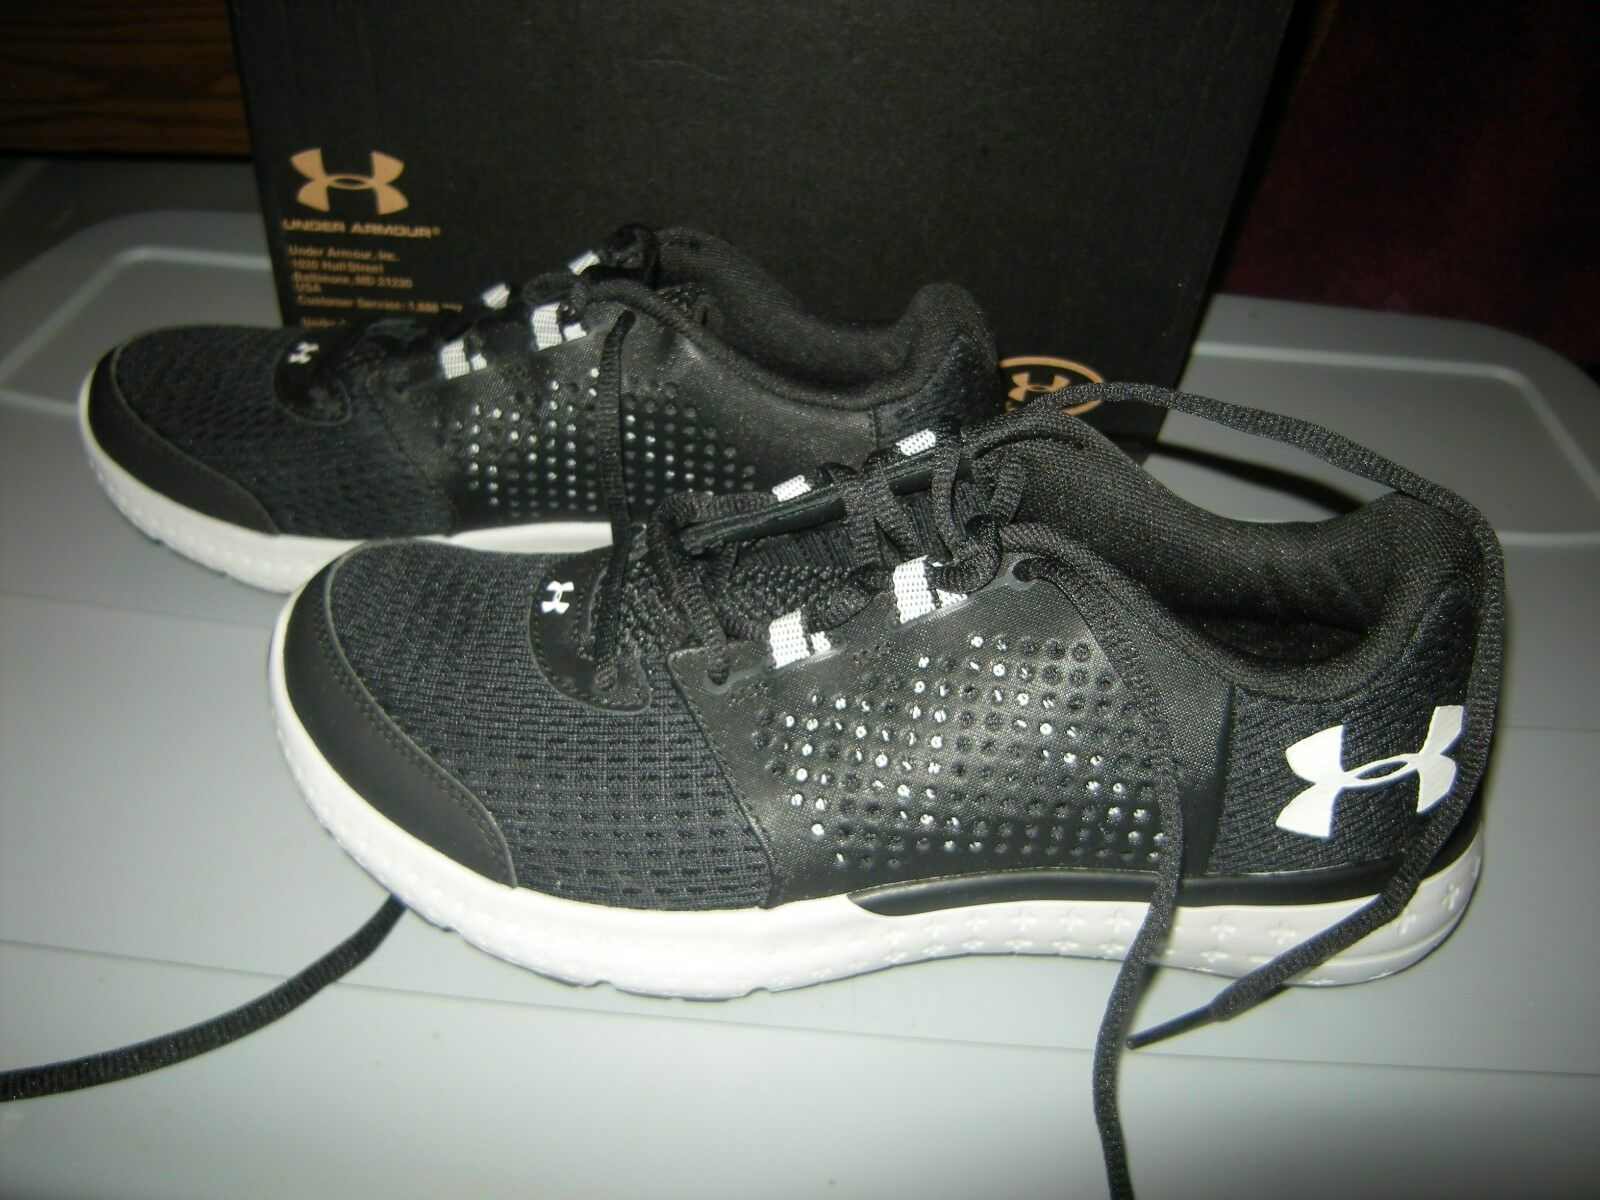 Brand New Womens Black & White Under Armour Micro Fuel Tennis Shoes, 11